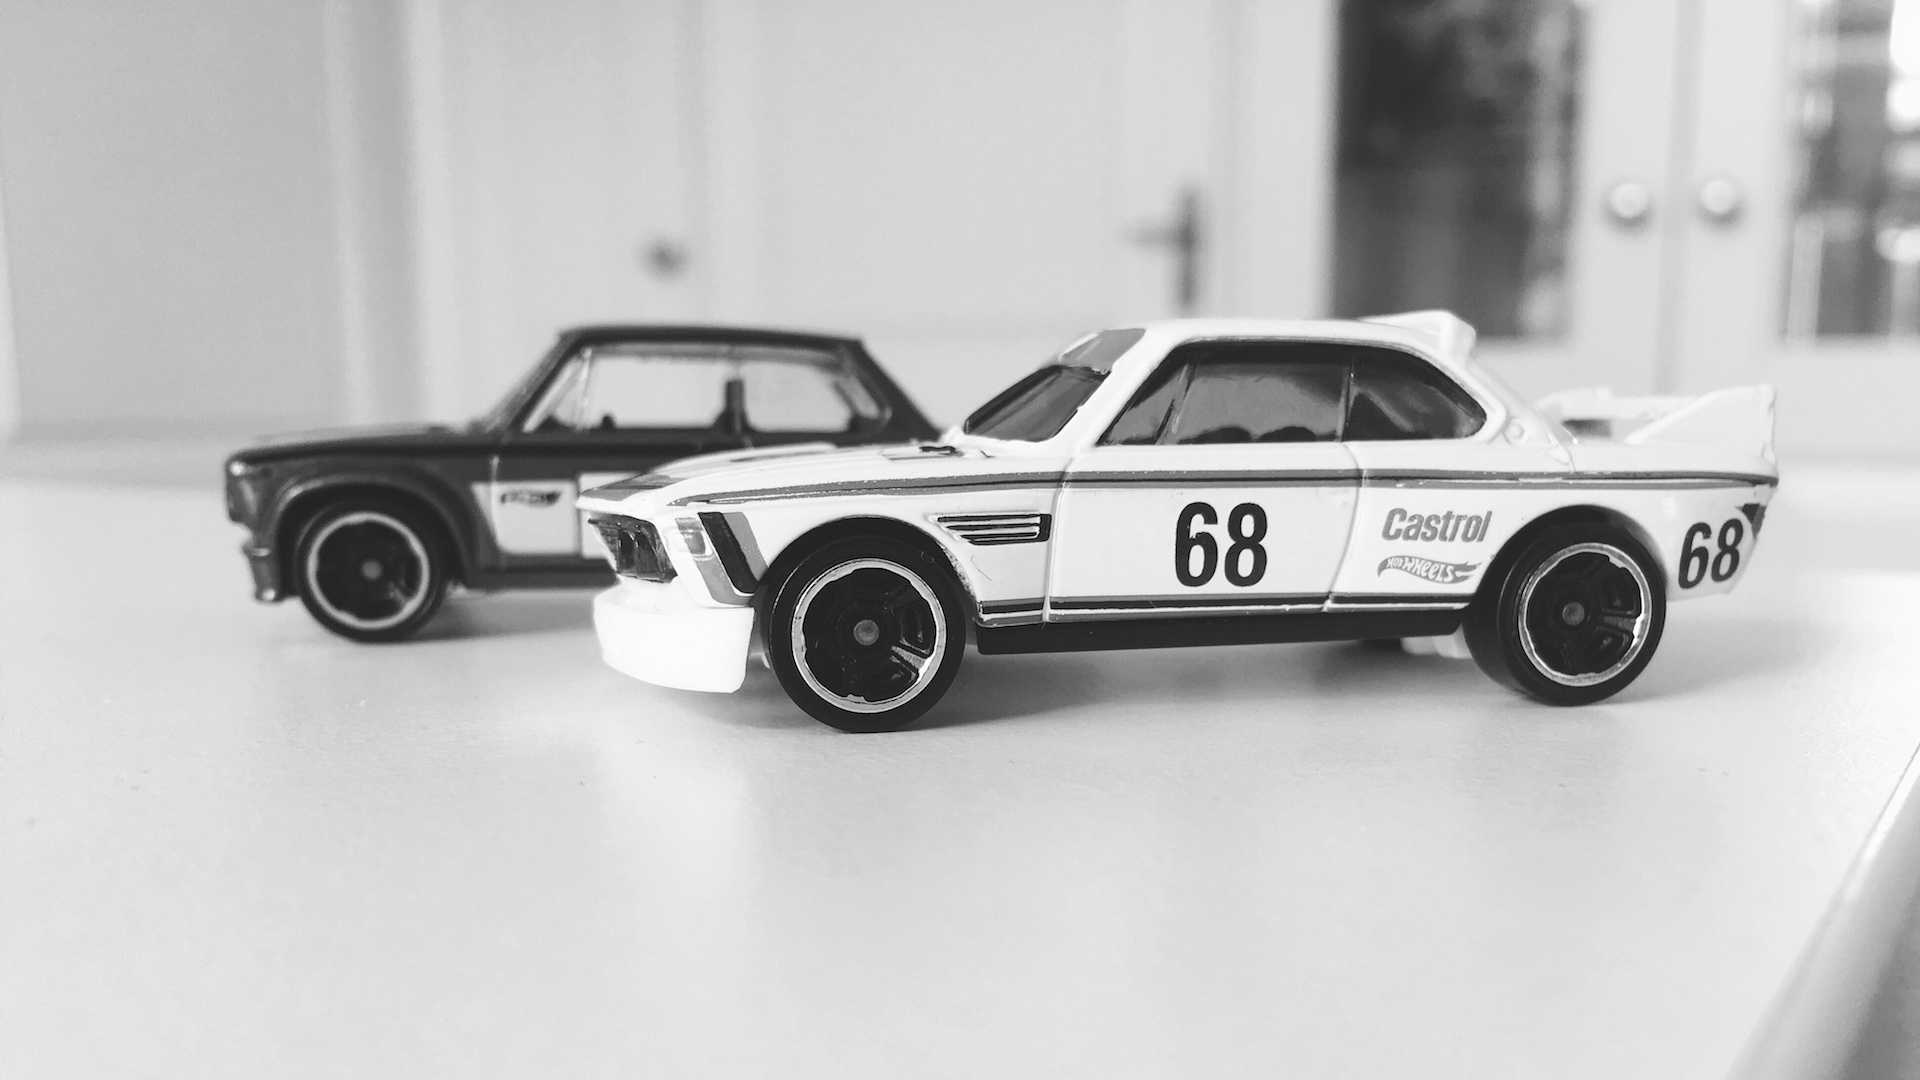 Mustang Dorado >> Ultimate Hot Wheels Collectors Guide for Beginners // 2016 Edition - WHEELSBYWOVKA